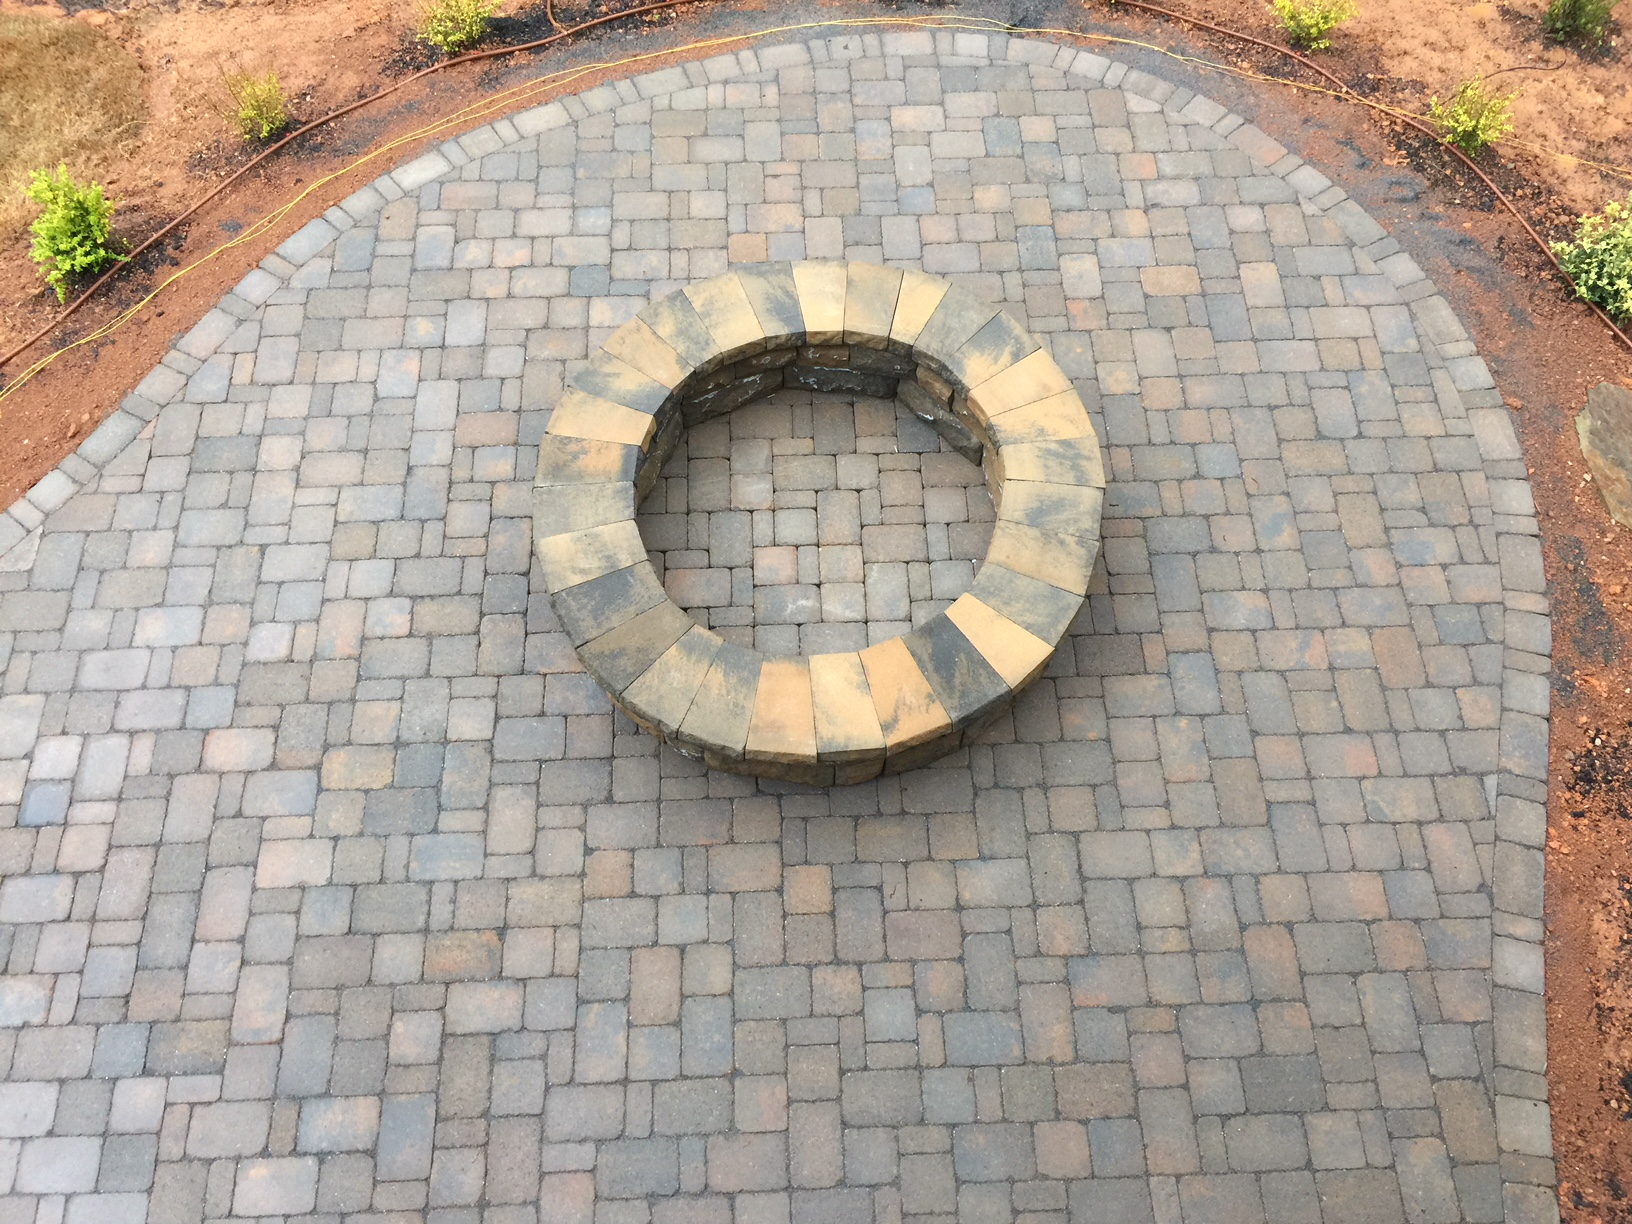 A Belgard Paver Patio, Fire Pit and Landscaping - Mr ... on Pavers Patio With Fire Pit id=74834